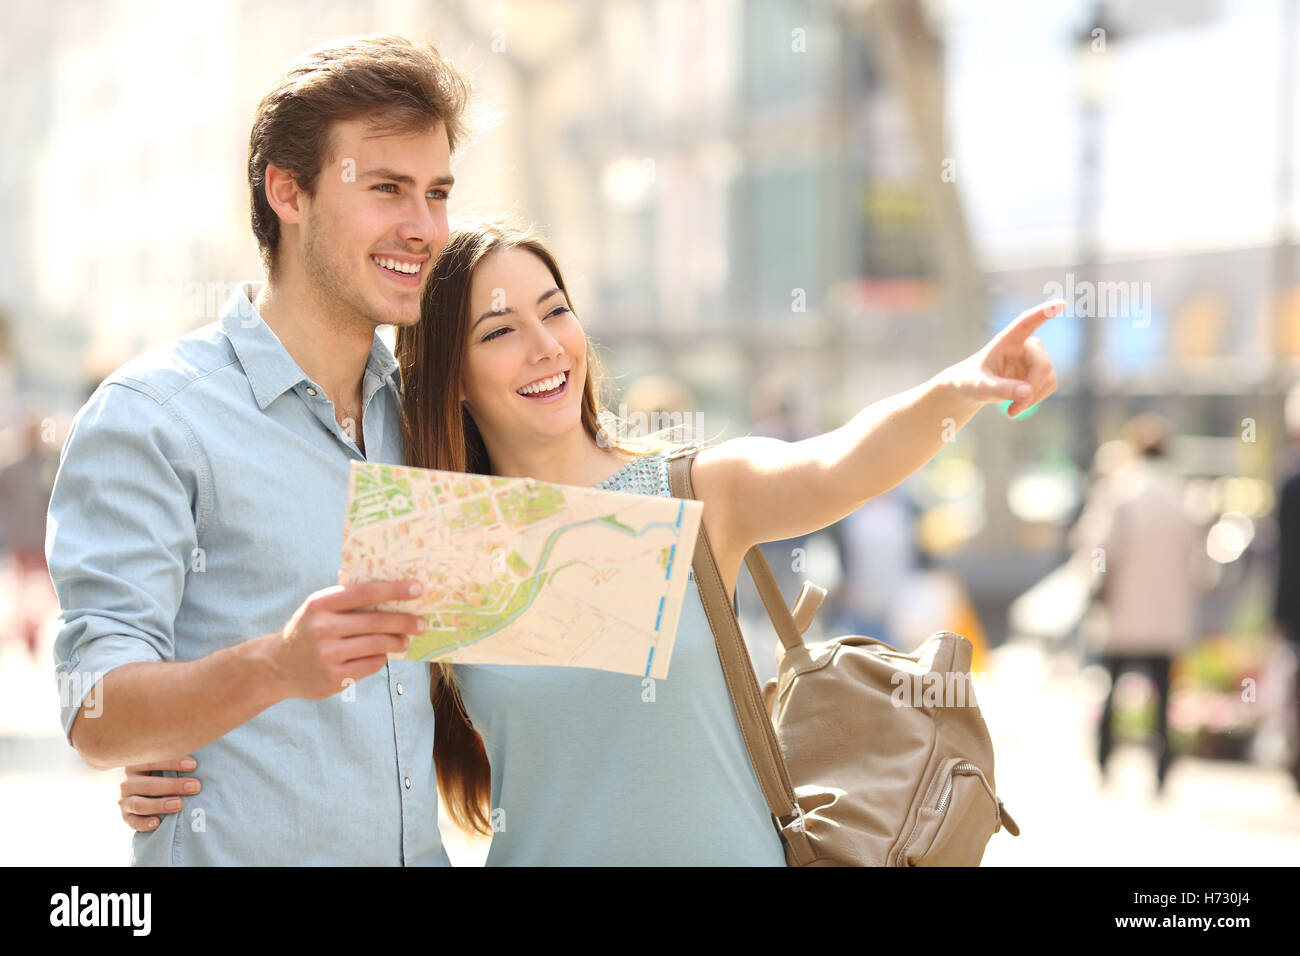 Couple of tourists consulting a city guide searching locations - Stock Image